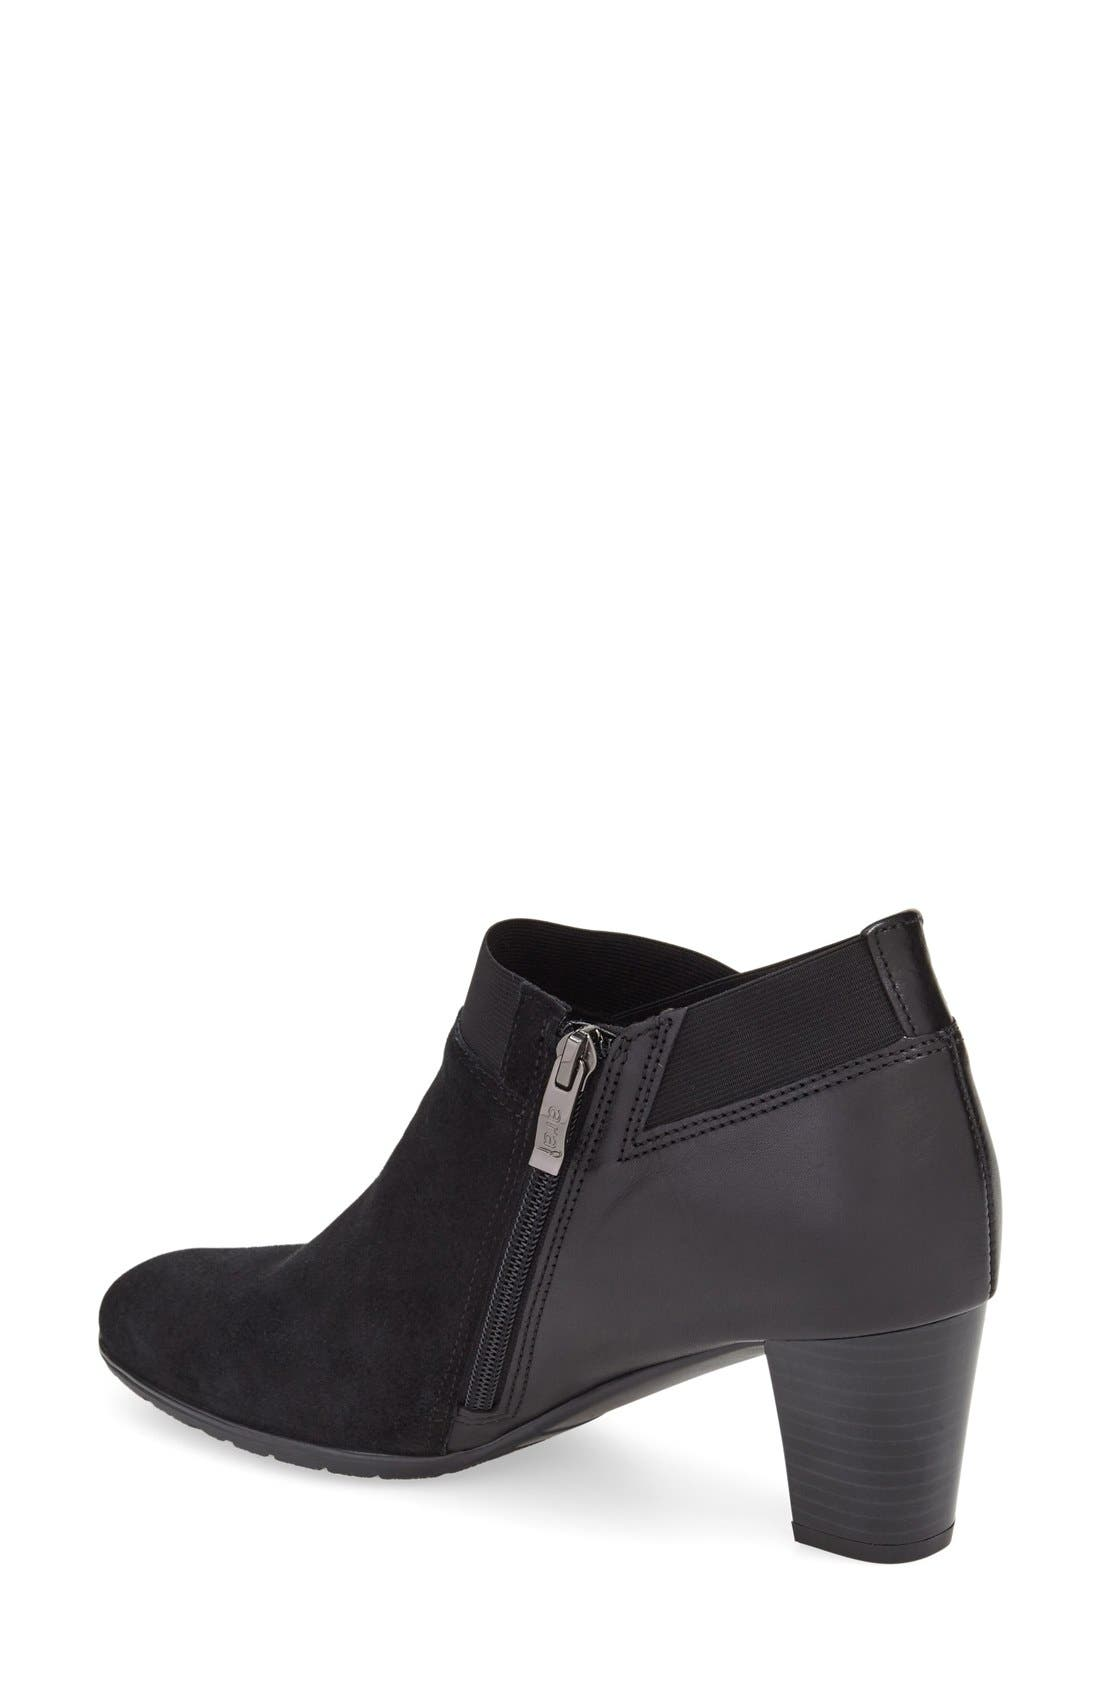 'Torrence' Almond Toe Zip Bootie,                             Alternate thumbnail 2, color,                             Black Suede